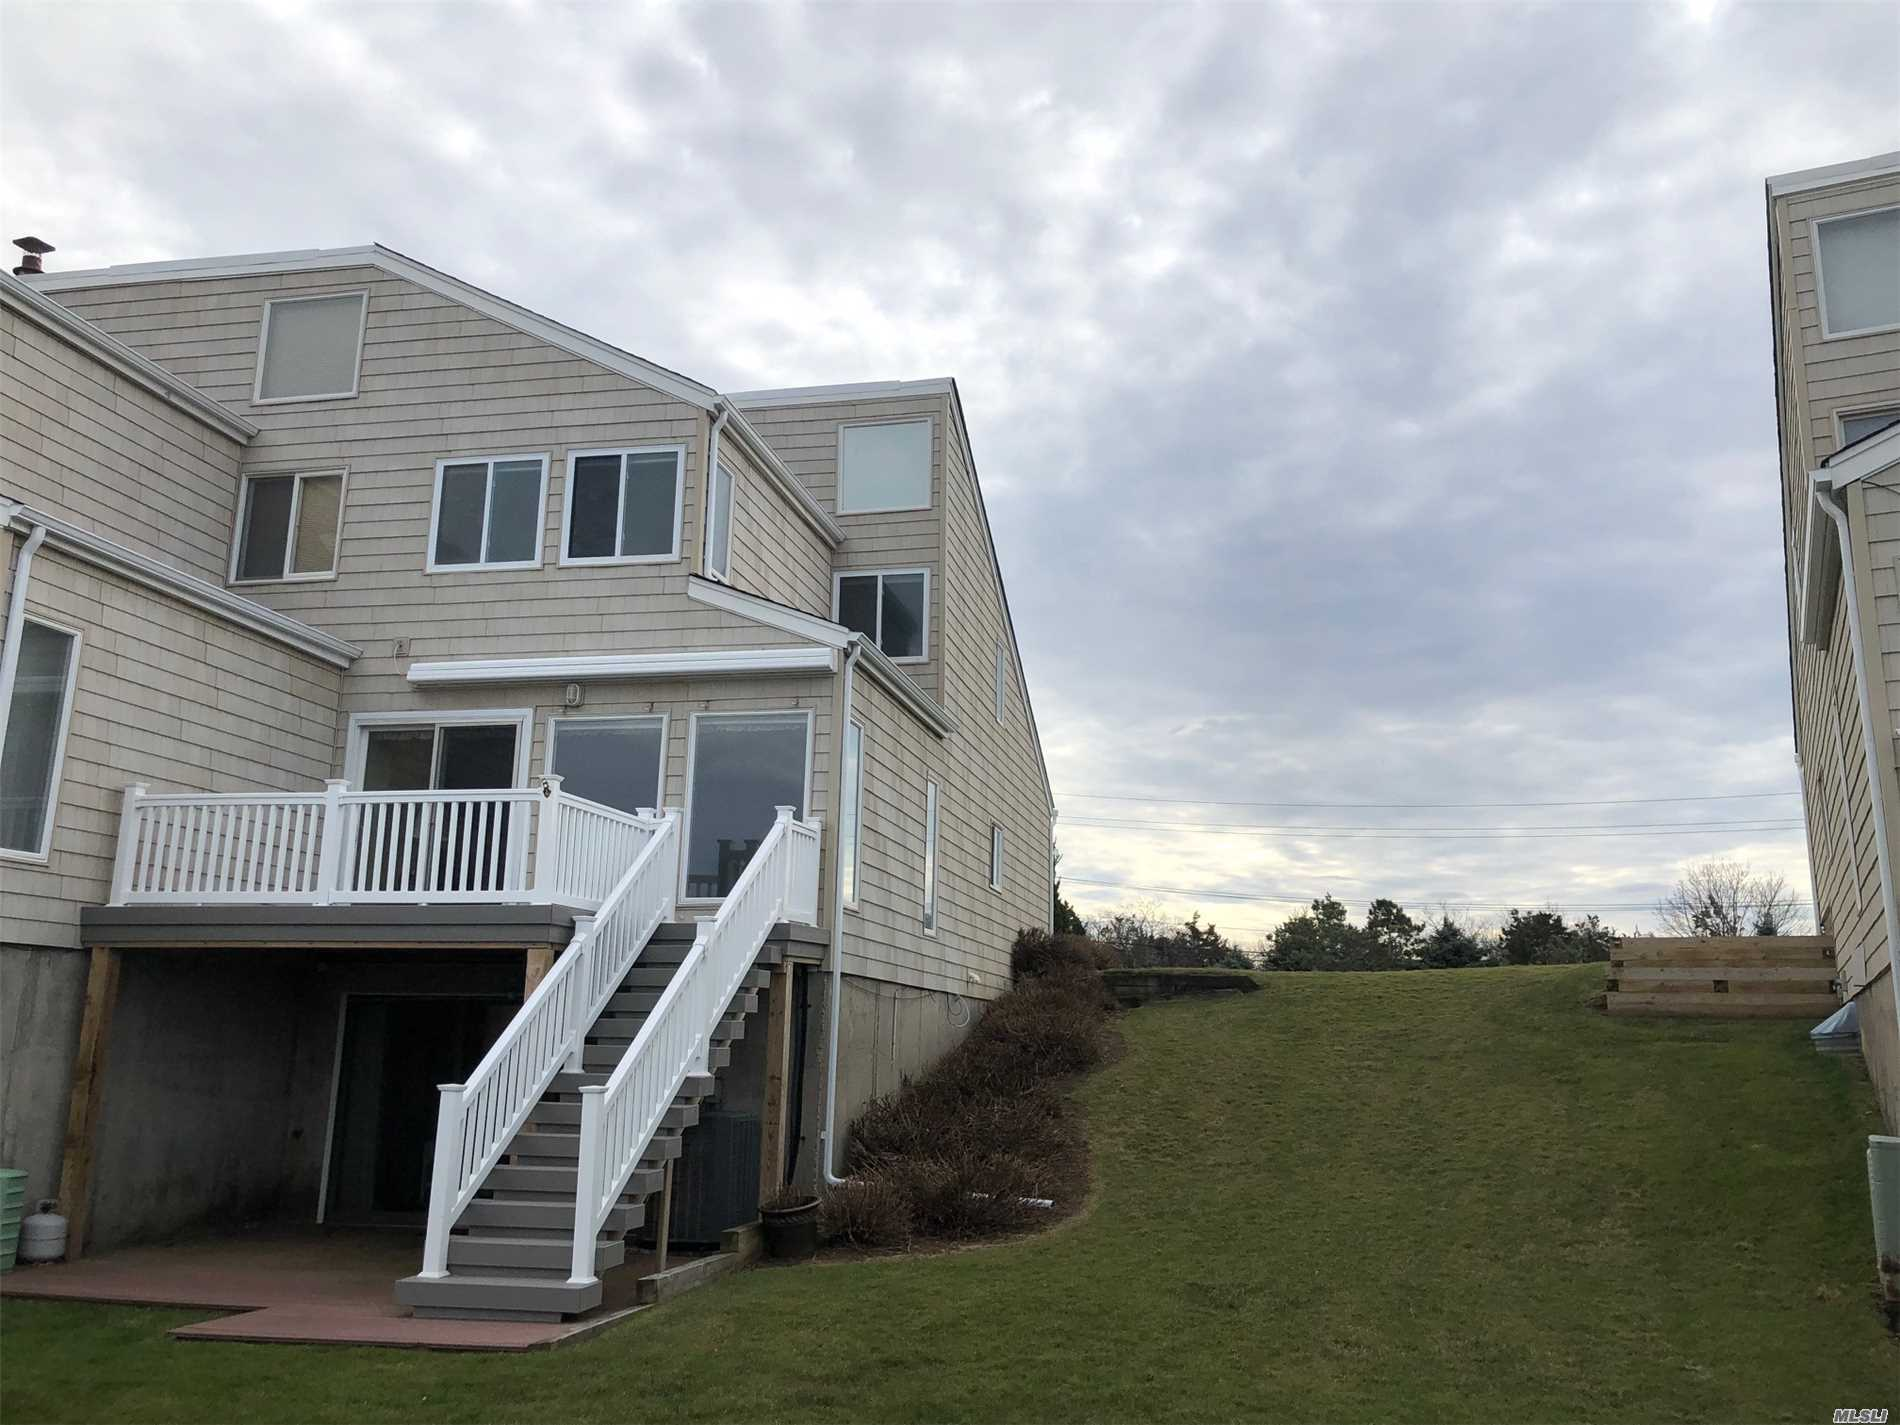 Waterfront Corner Unit With Spectacular Views & Sunsets Renovated Kit, Dr, 3Bdrms, 2-1/2 Baths. Spacious Sunlit Lv Room W/Sliders To Waterside Deck. Walkout Lower Level  W/Sliding Doors To Outside Deck  Family Rm  Brm, Full Ba,   Single Unit - No One Above Or Below.Hoa $450 Mo Near Restaurants Golf Wineries